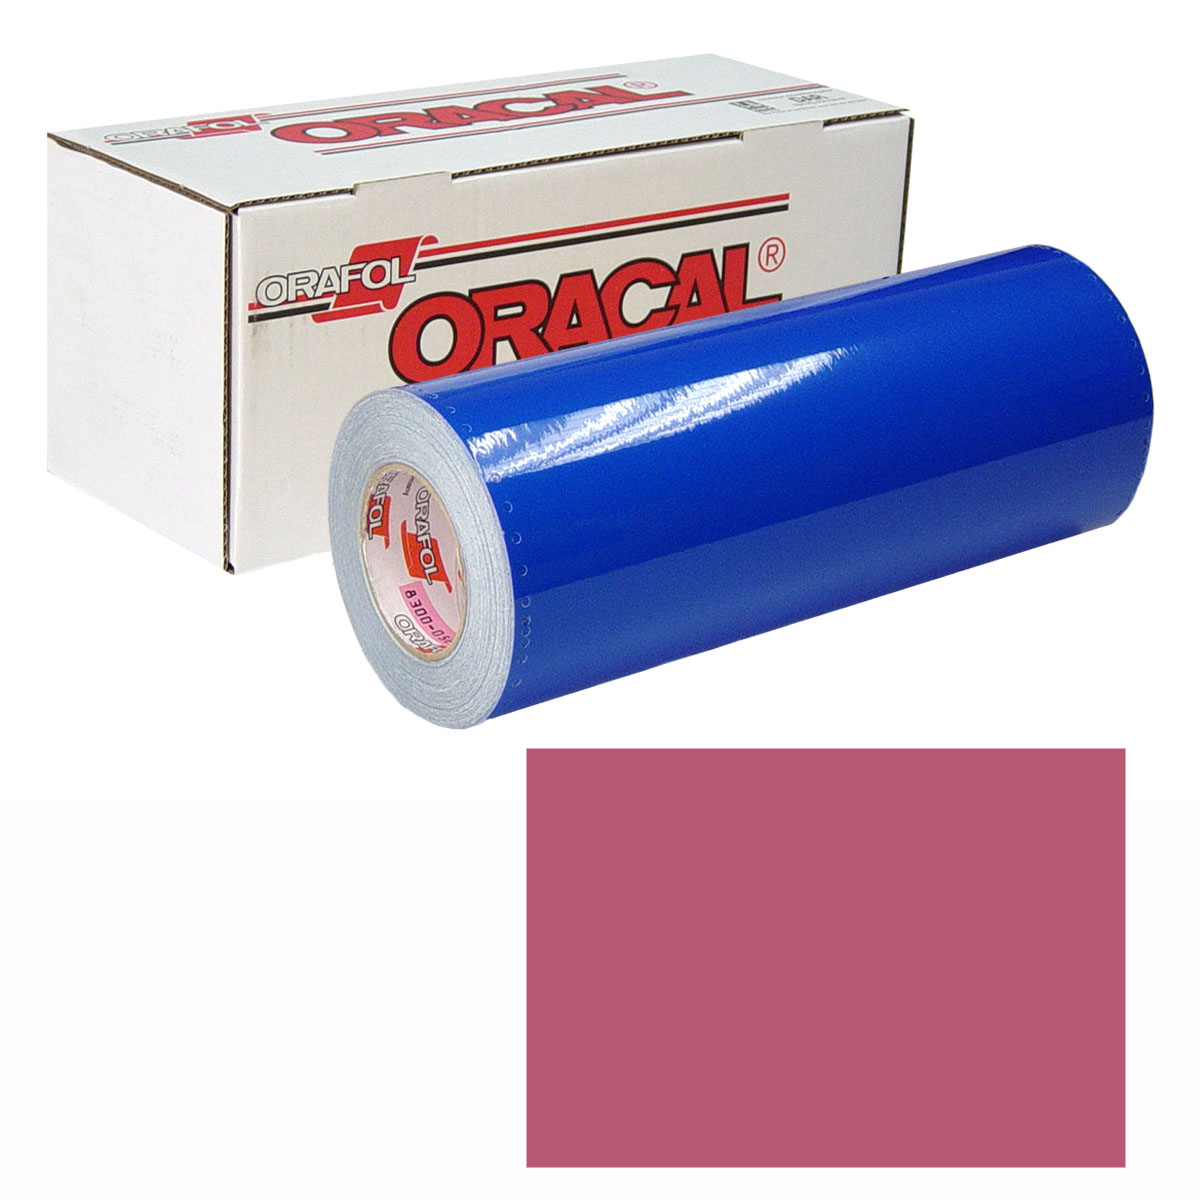 ORACAL 631 Unp 30In X 10Yd 430 Lip Stick